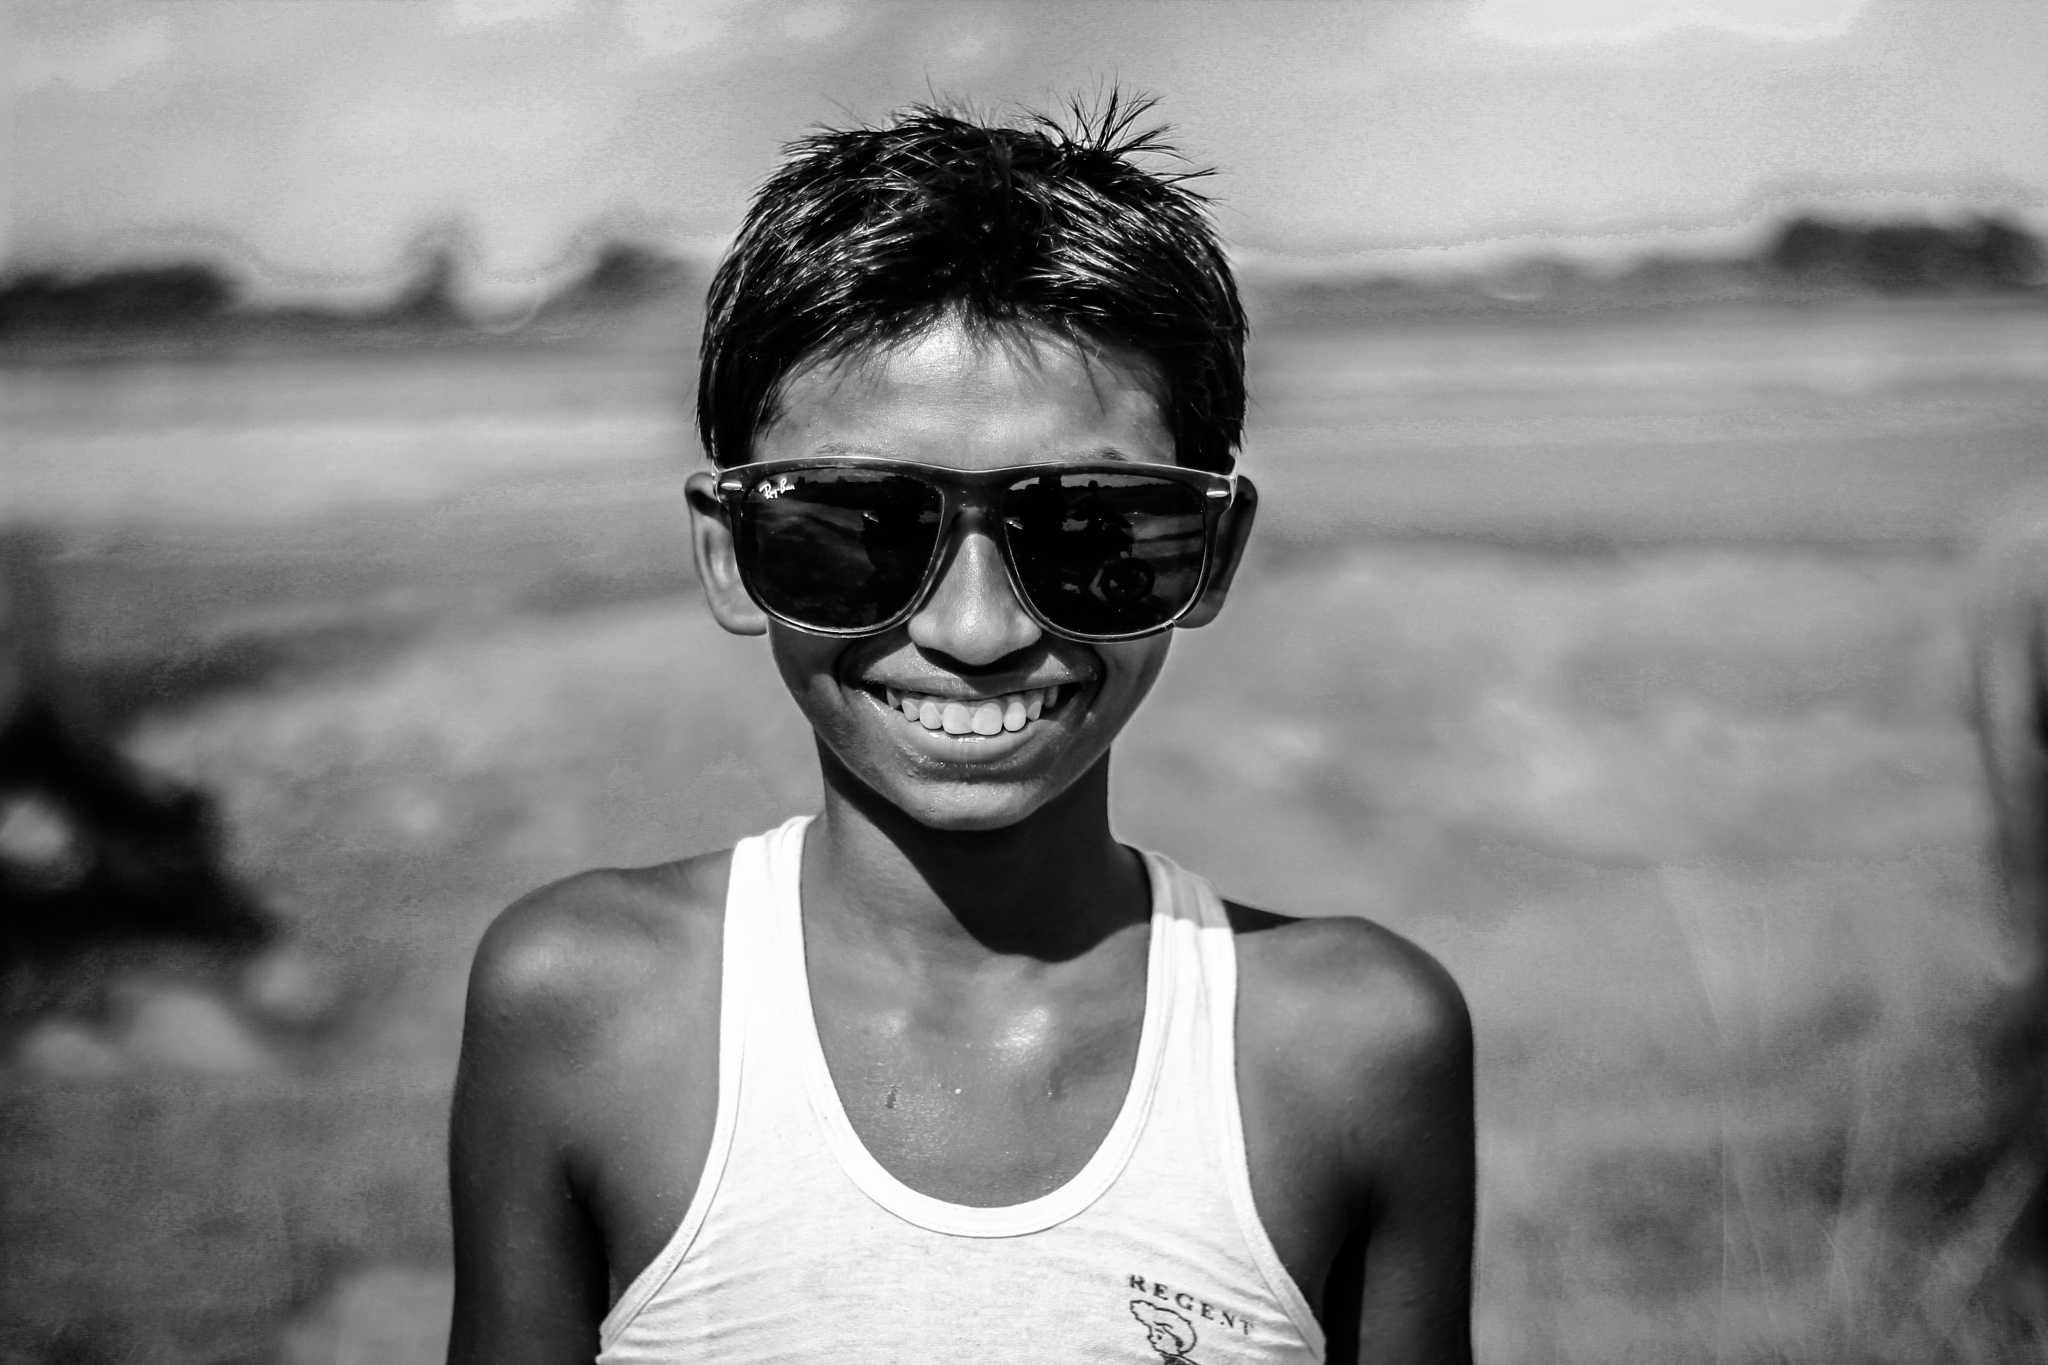 Smile Please by susilshah